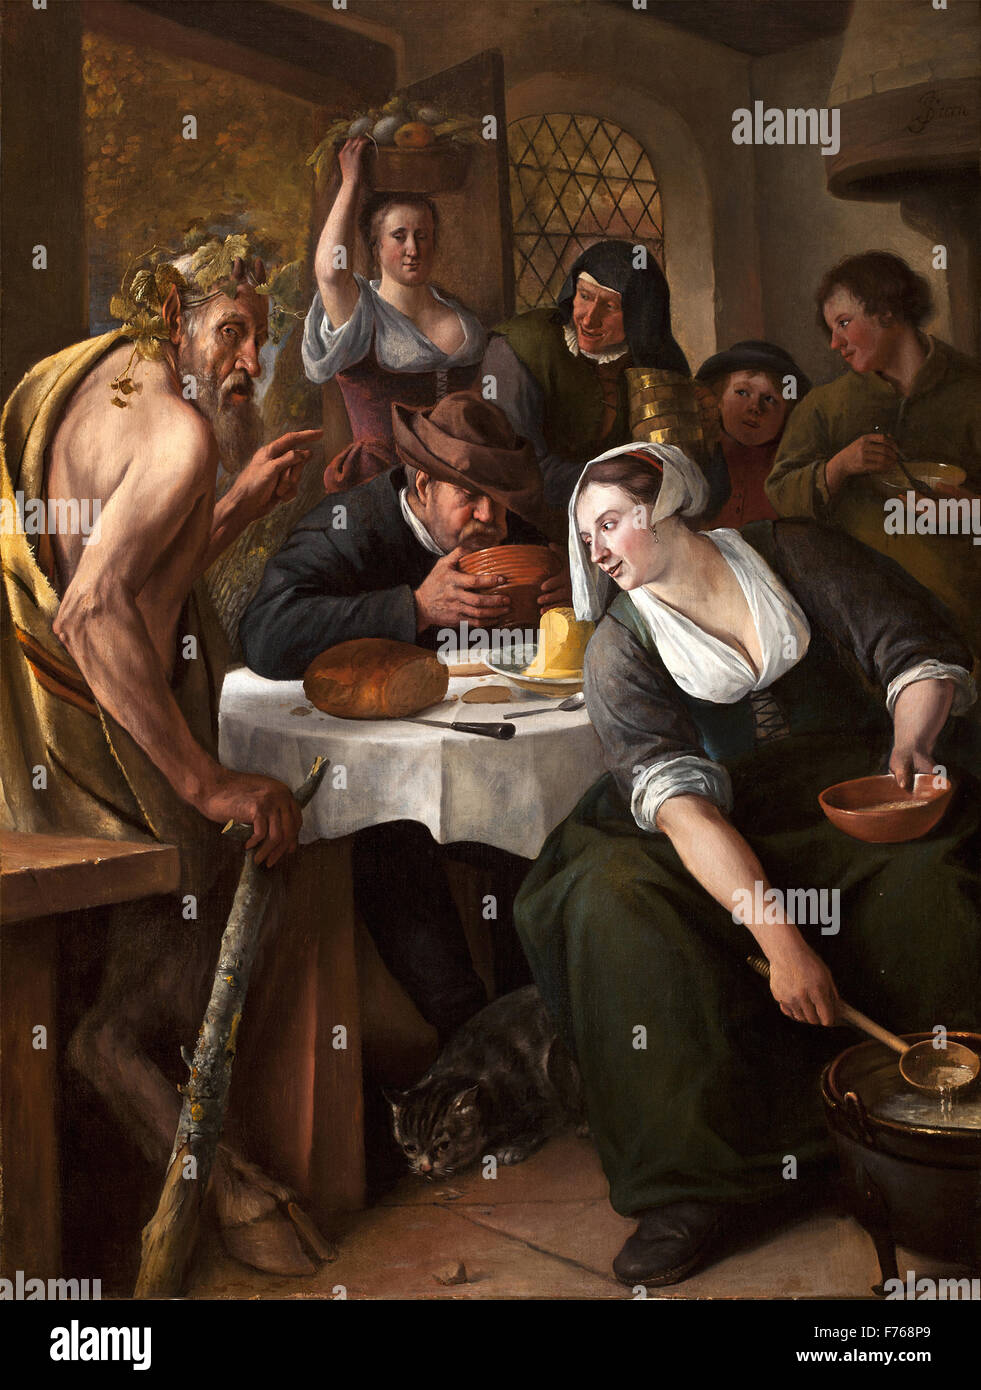 Jan Steen - The Satyr - Stock Image